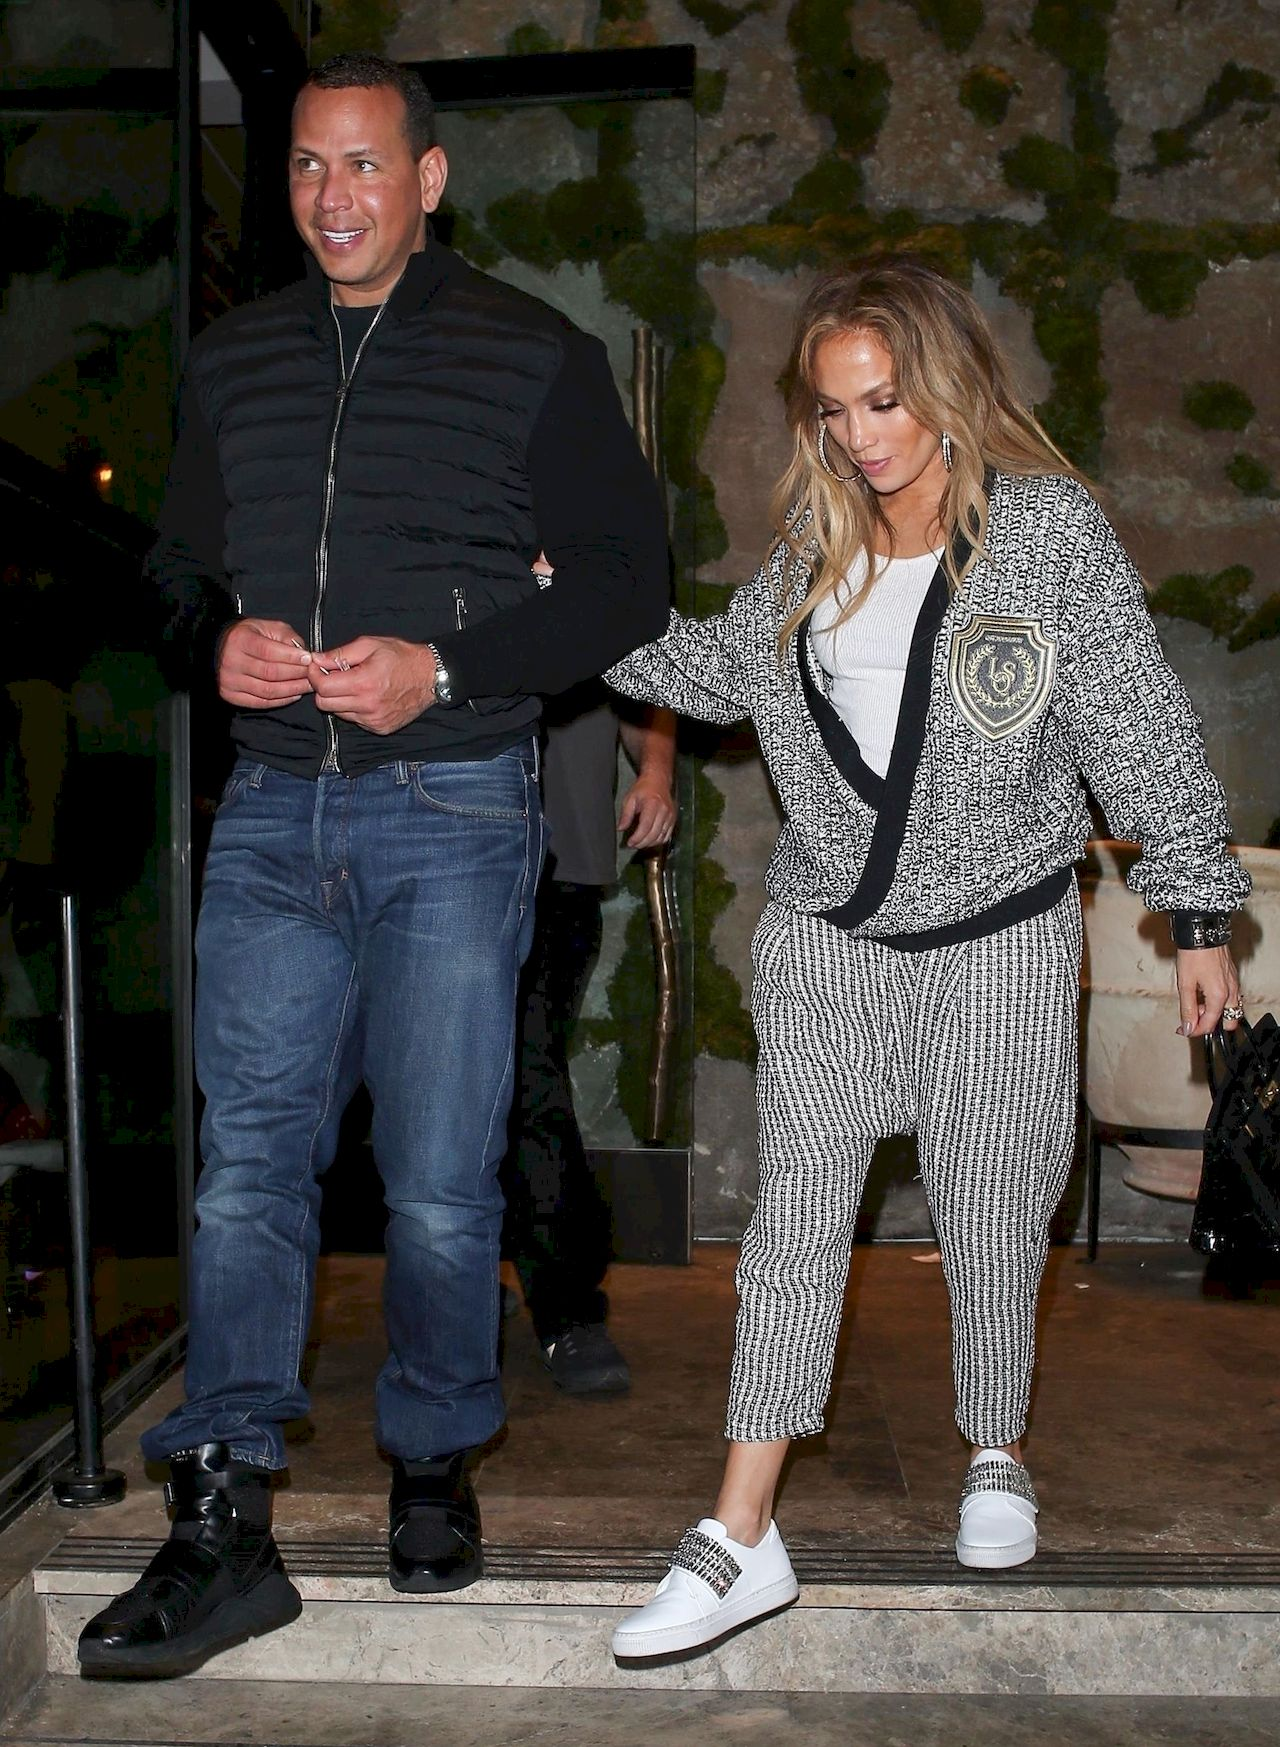 *EXCLUSIVE* Jennifer Lopez and Alex Rodriguez grab Avra Beverly Hills Estiatorio to end the weekend Jennifer Lopez, Alex Rodriguez